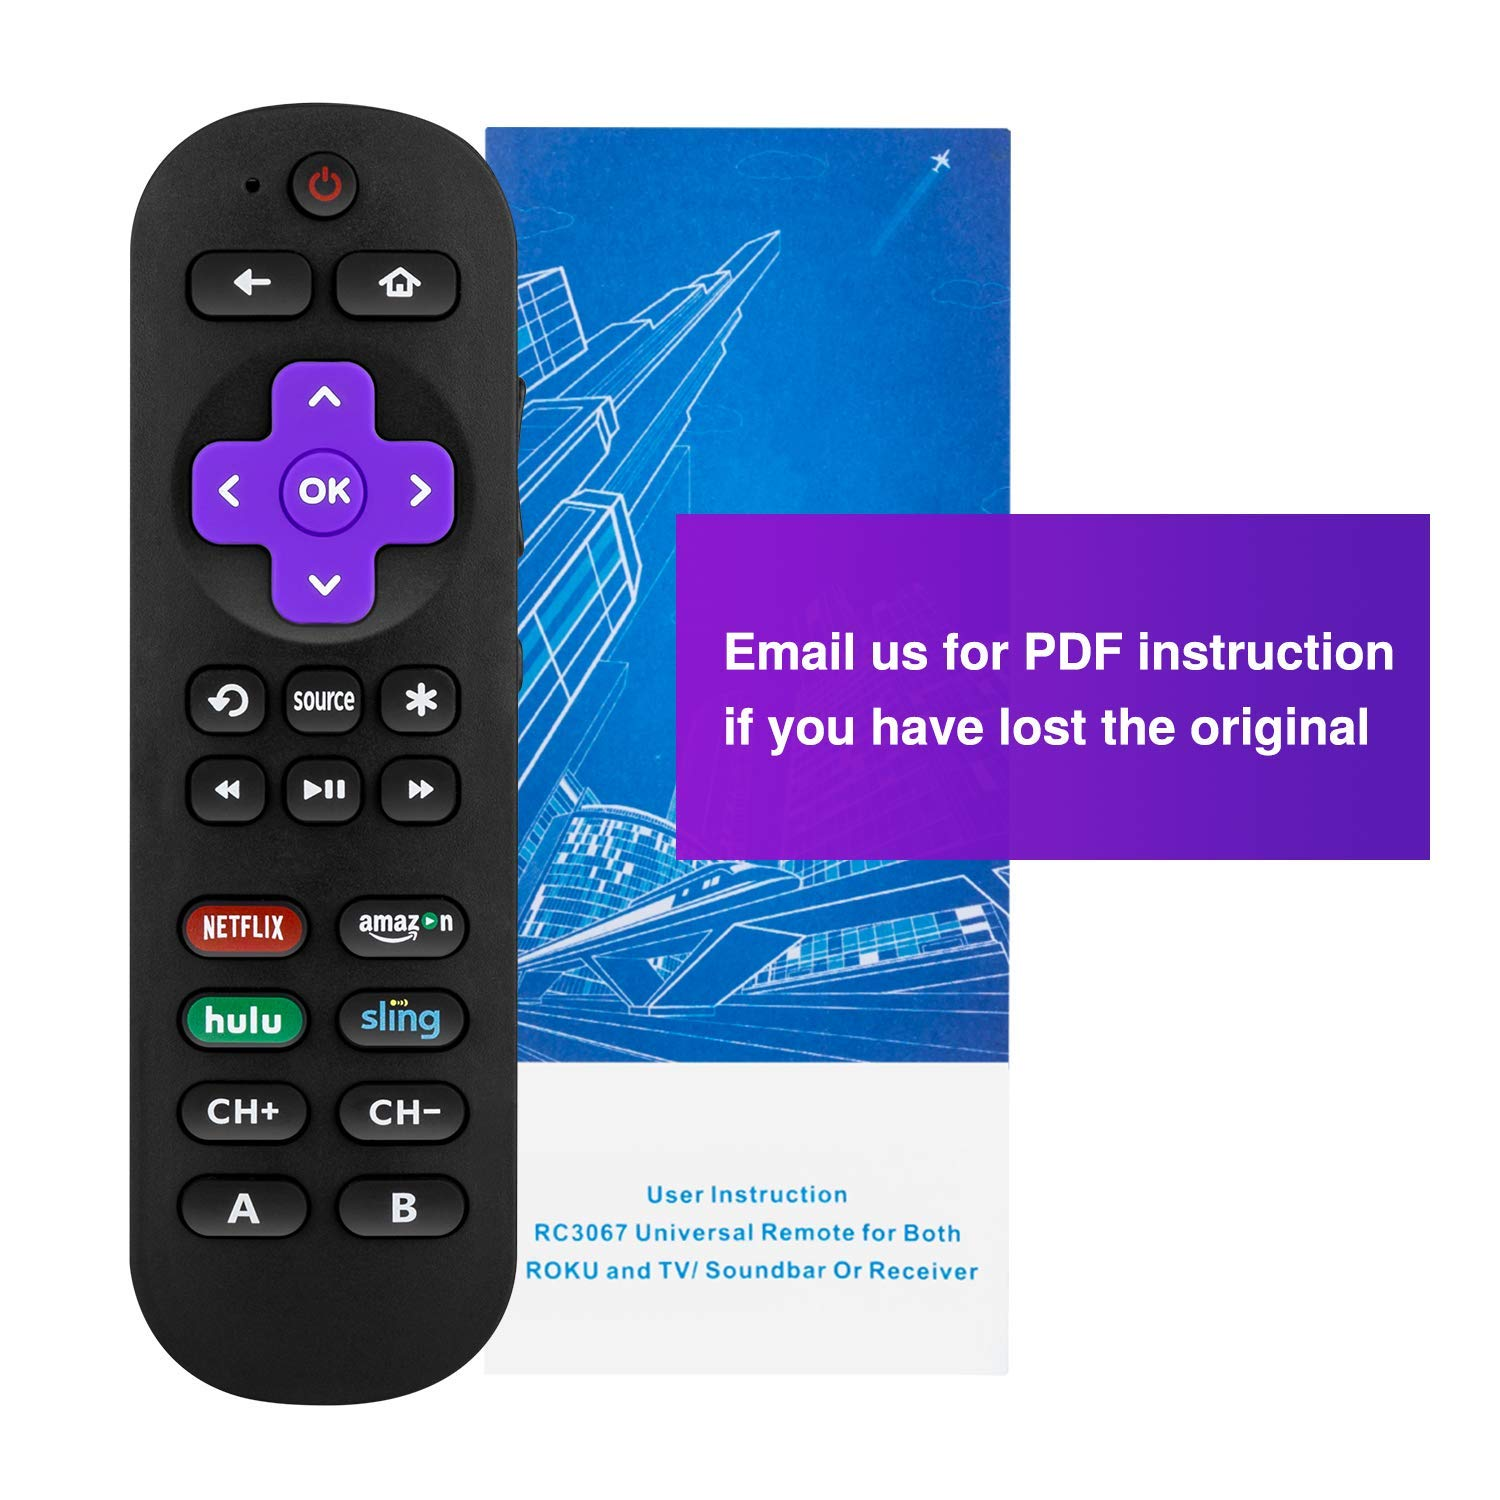 Universal Remote Control for Roku Player with 9 More Learning Keys to Control TV Soundbar Receiver All in One (Fit for Roku 1 2 3 4 Premier+ Express Ultra)【NOT for ROKU Stick & Built-in ROKU TV】 by Hztprm